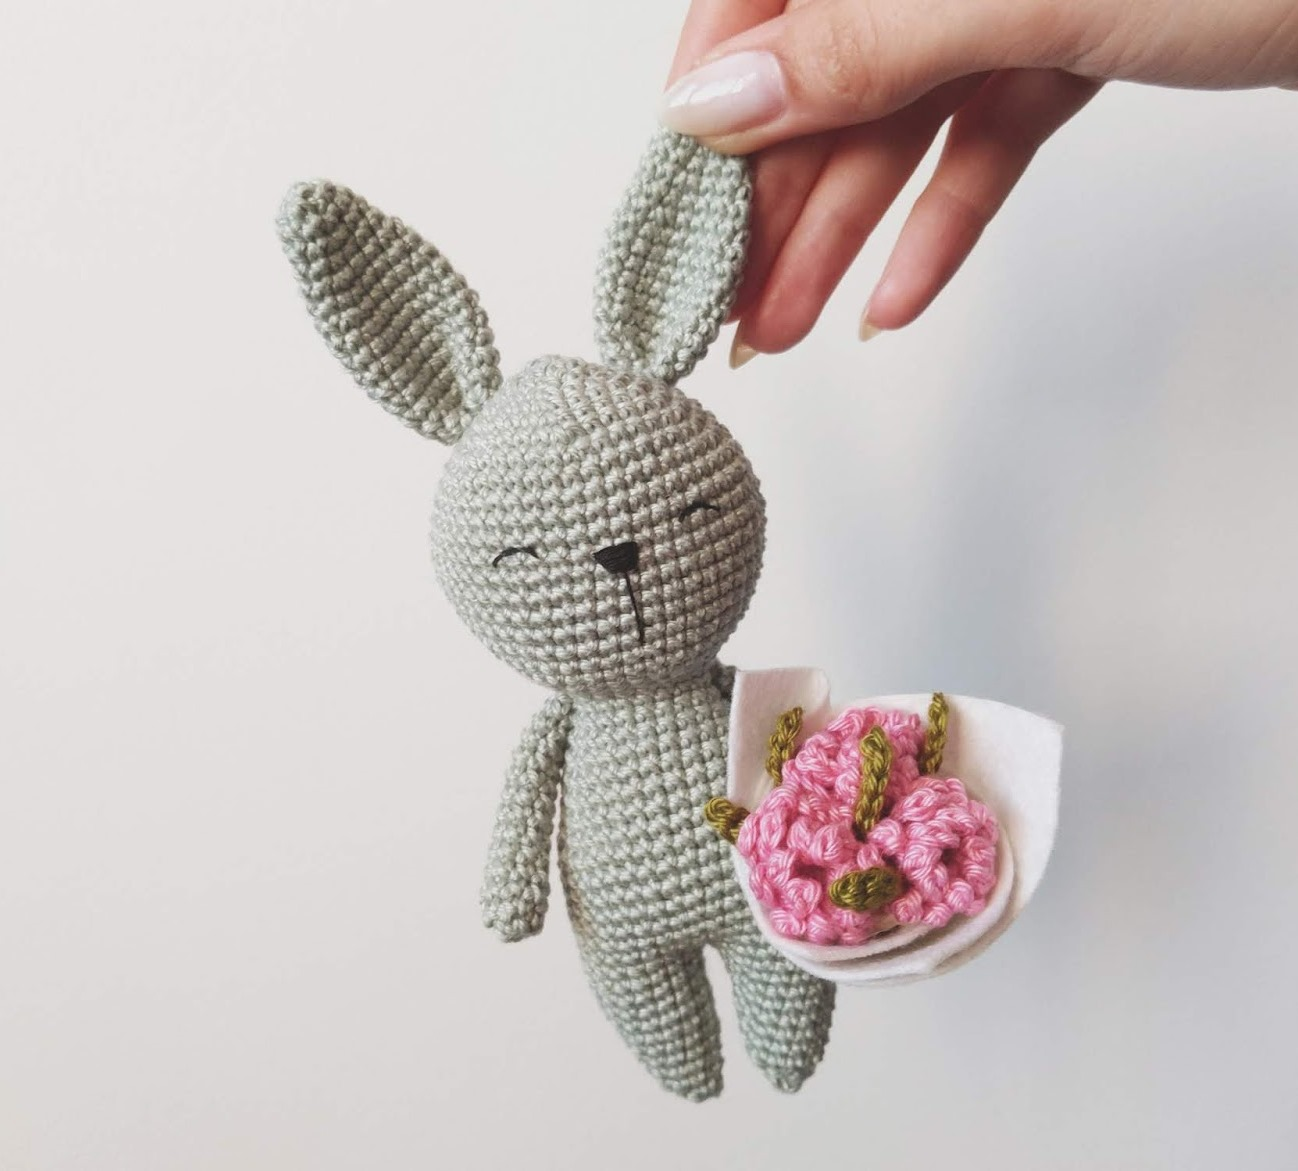 Little Crochet Bunny - These free amigurumi patterns and crochet toys are so fun, it will make you want to be a kid again. These cute patterns are imaginative and sweet. #AmigurumiPatterns #CrochetPatterns #FreeCrochetPatterns